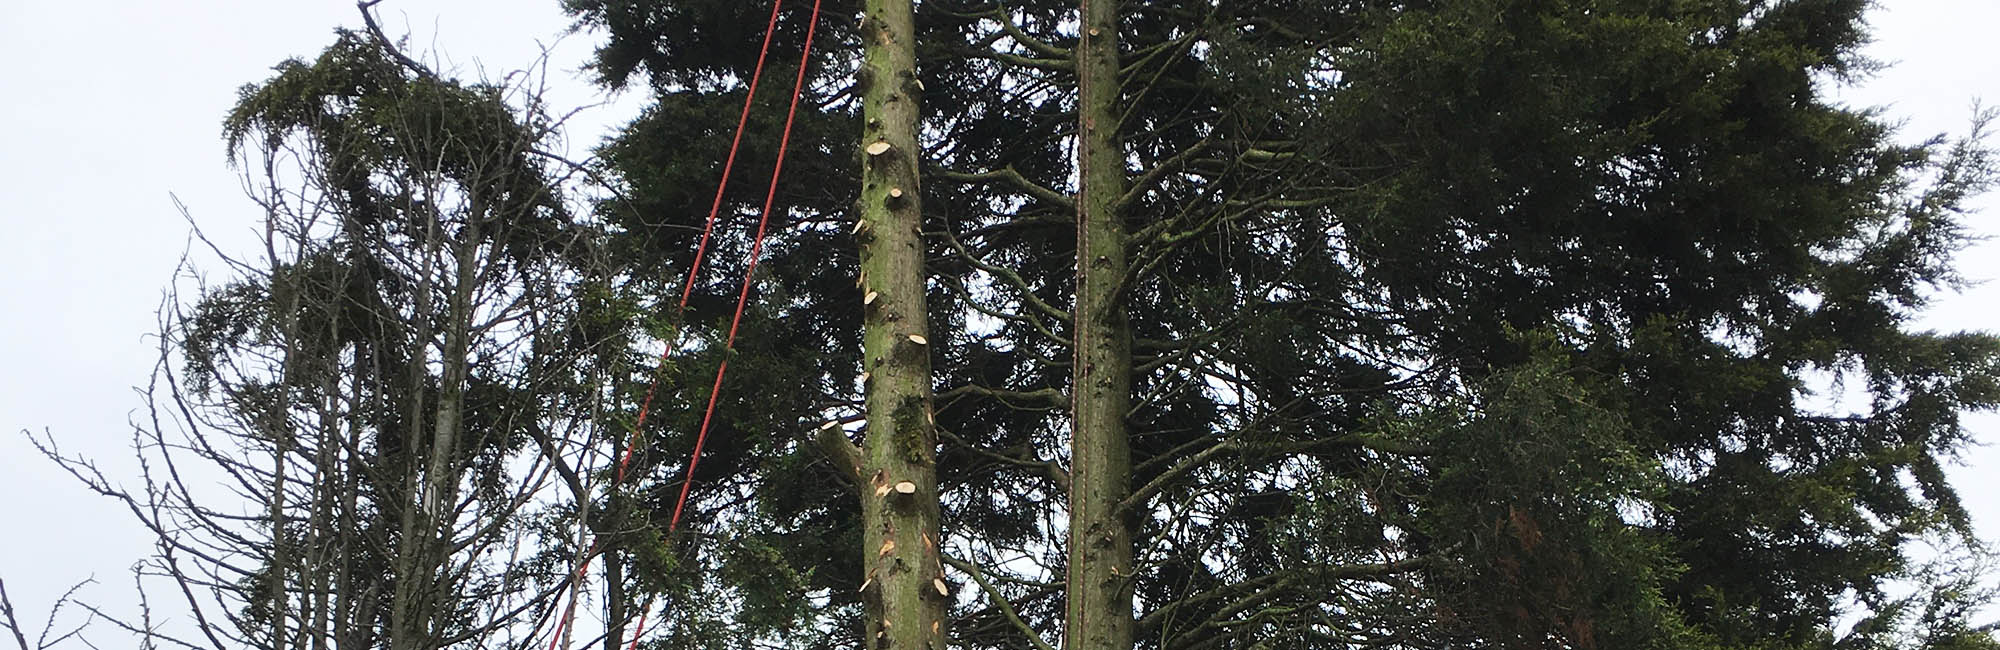 Tree Surgery & Maintenance Services